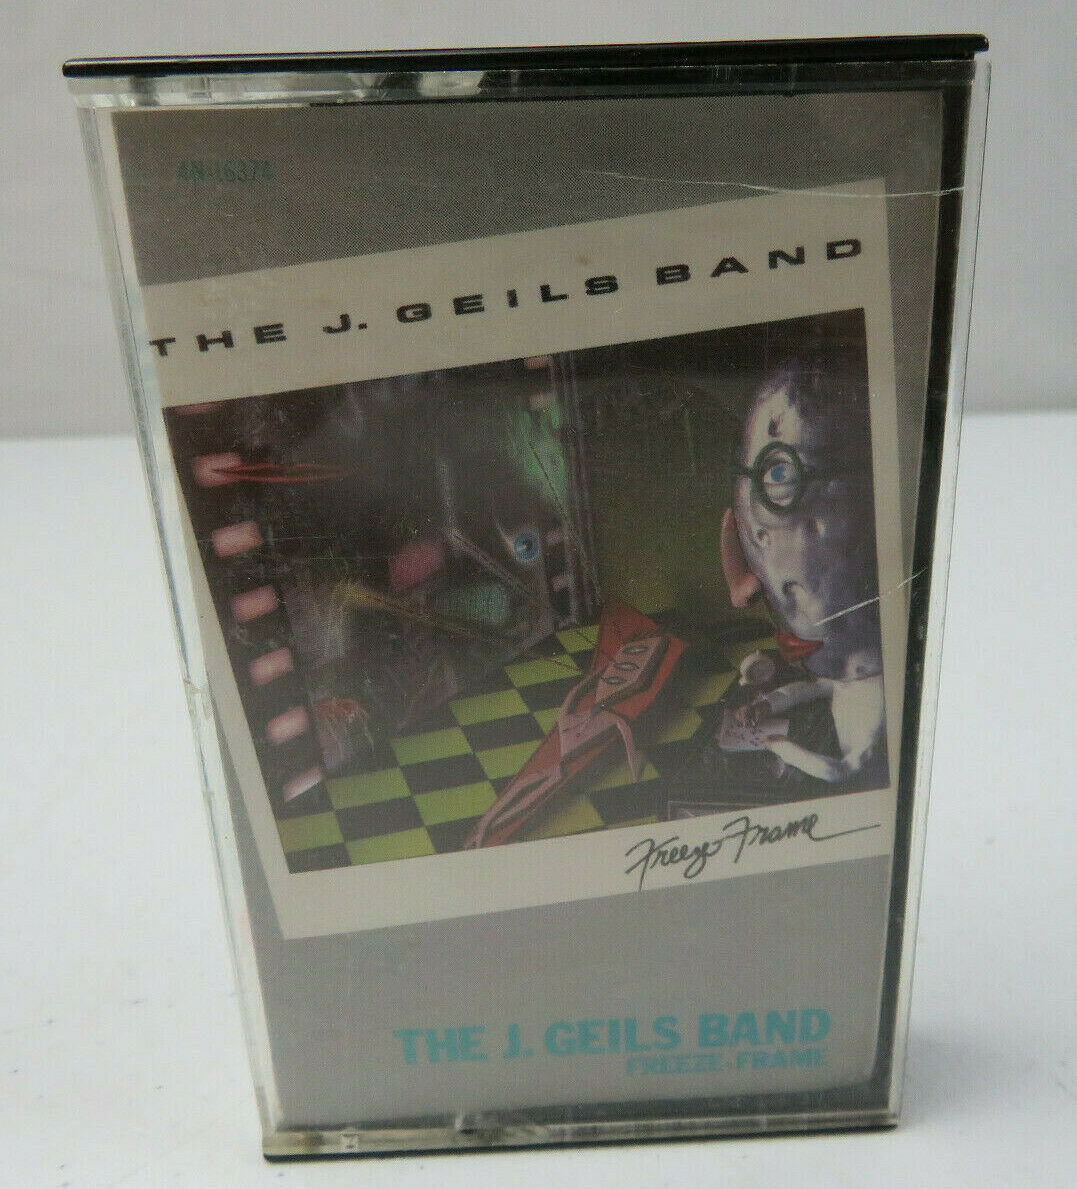 Primary image for VINTAGE 1981 THE J.GEILS BAND FREEZE FRAME MUSIC CASSETTE